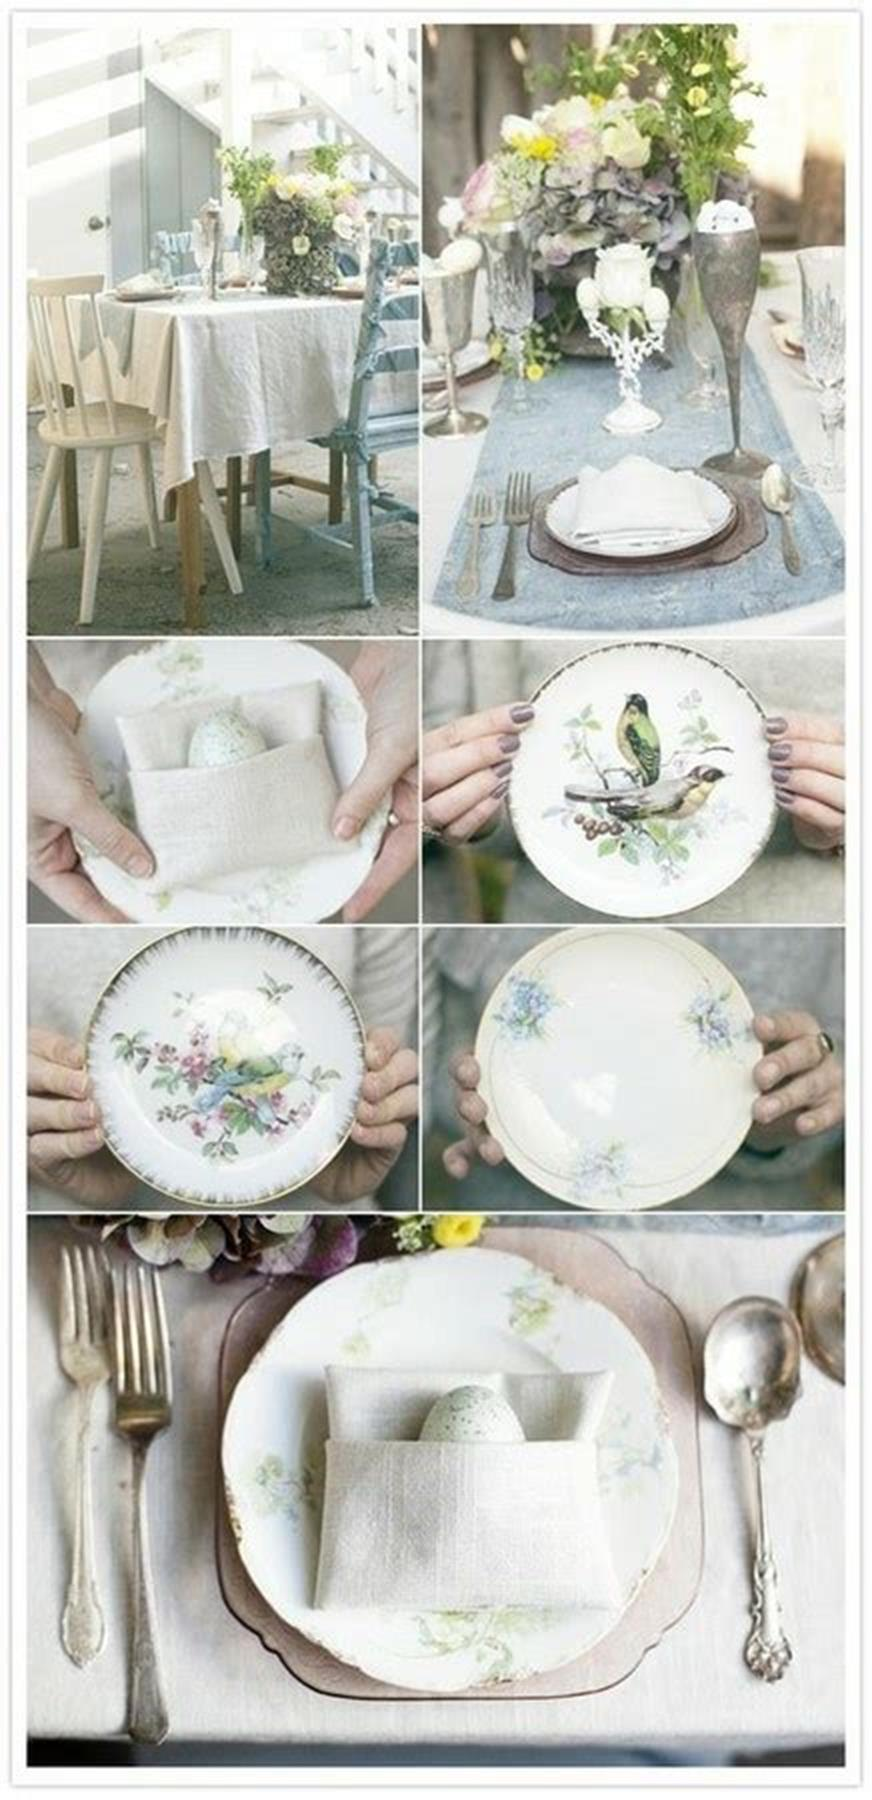 42 DIY Beautiful Vintage Spring Decorations Ideas You Will Love 11